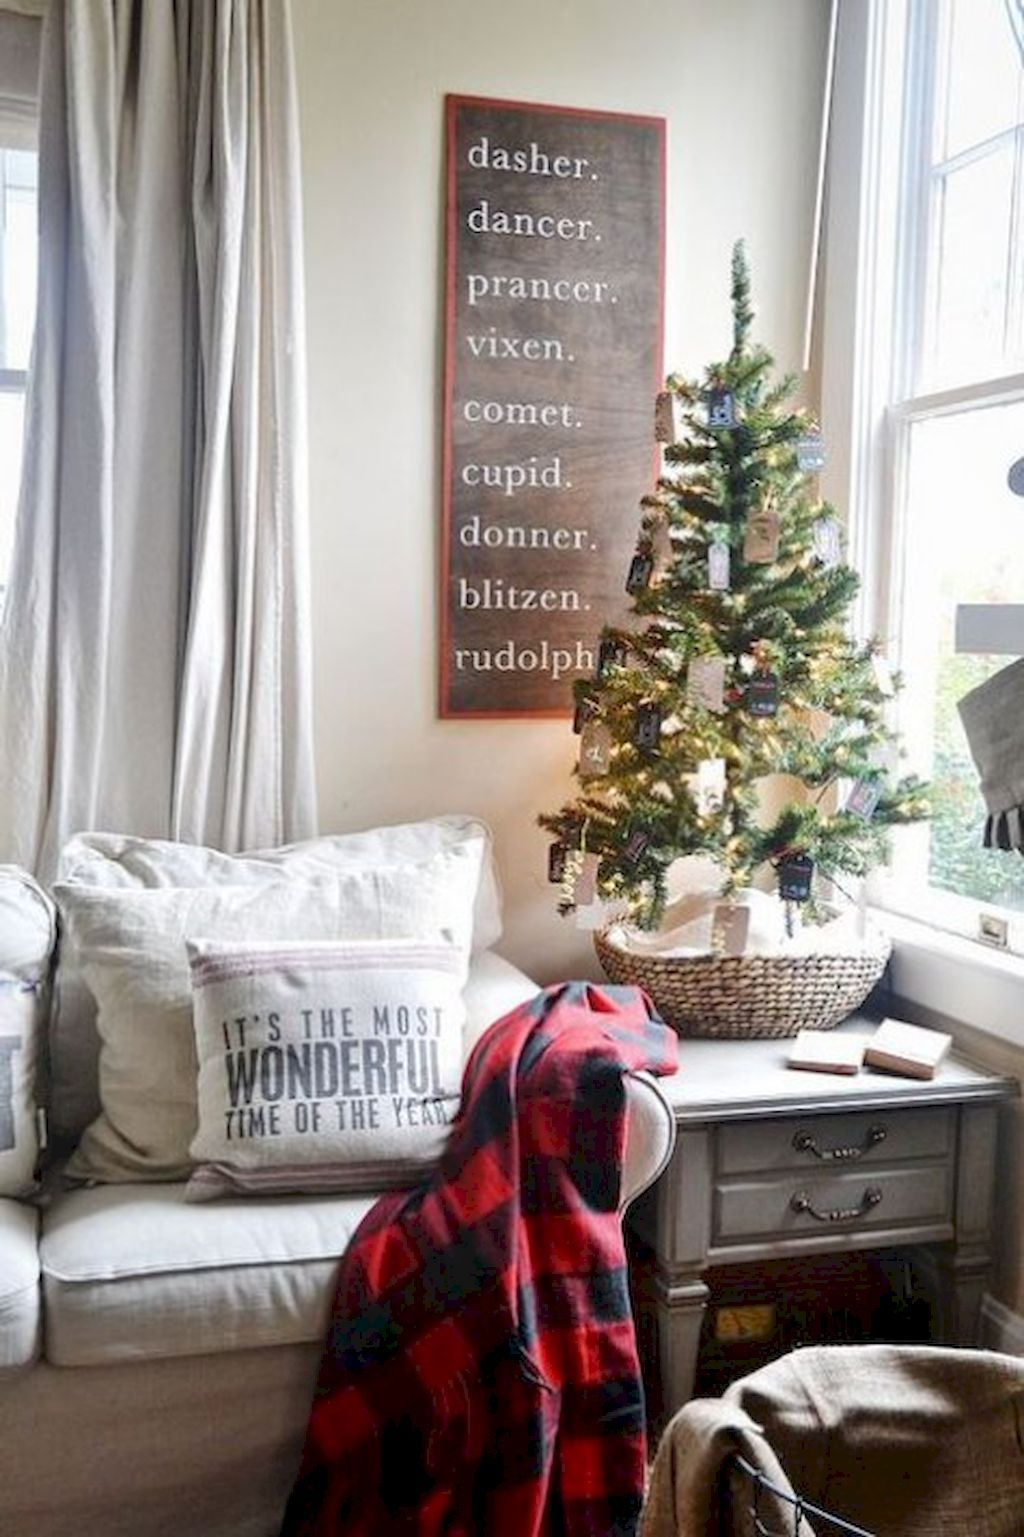 60 DIY On A Budget Apartment Decorating Christmas Ideas   Holidays     60 DIY On A Budget Apartment Decorating Christmas Ideas